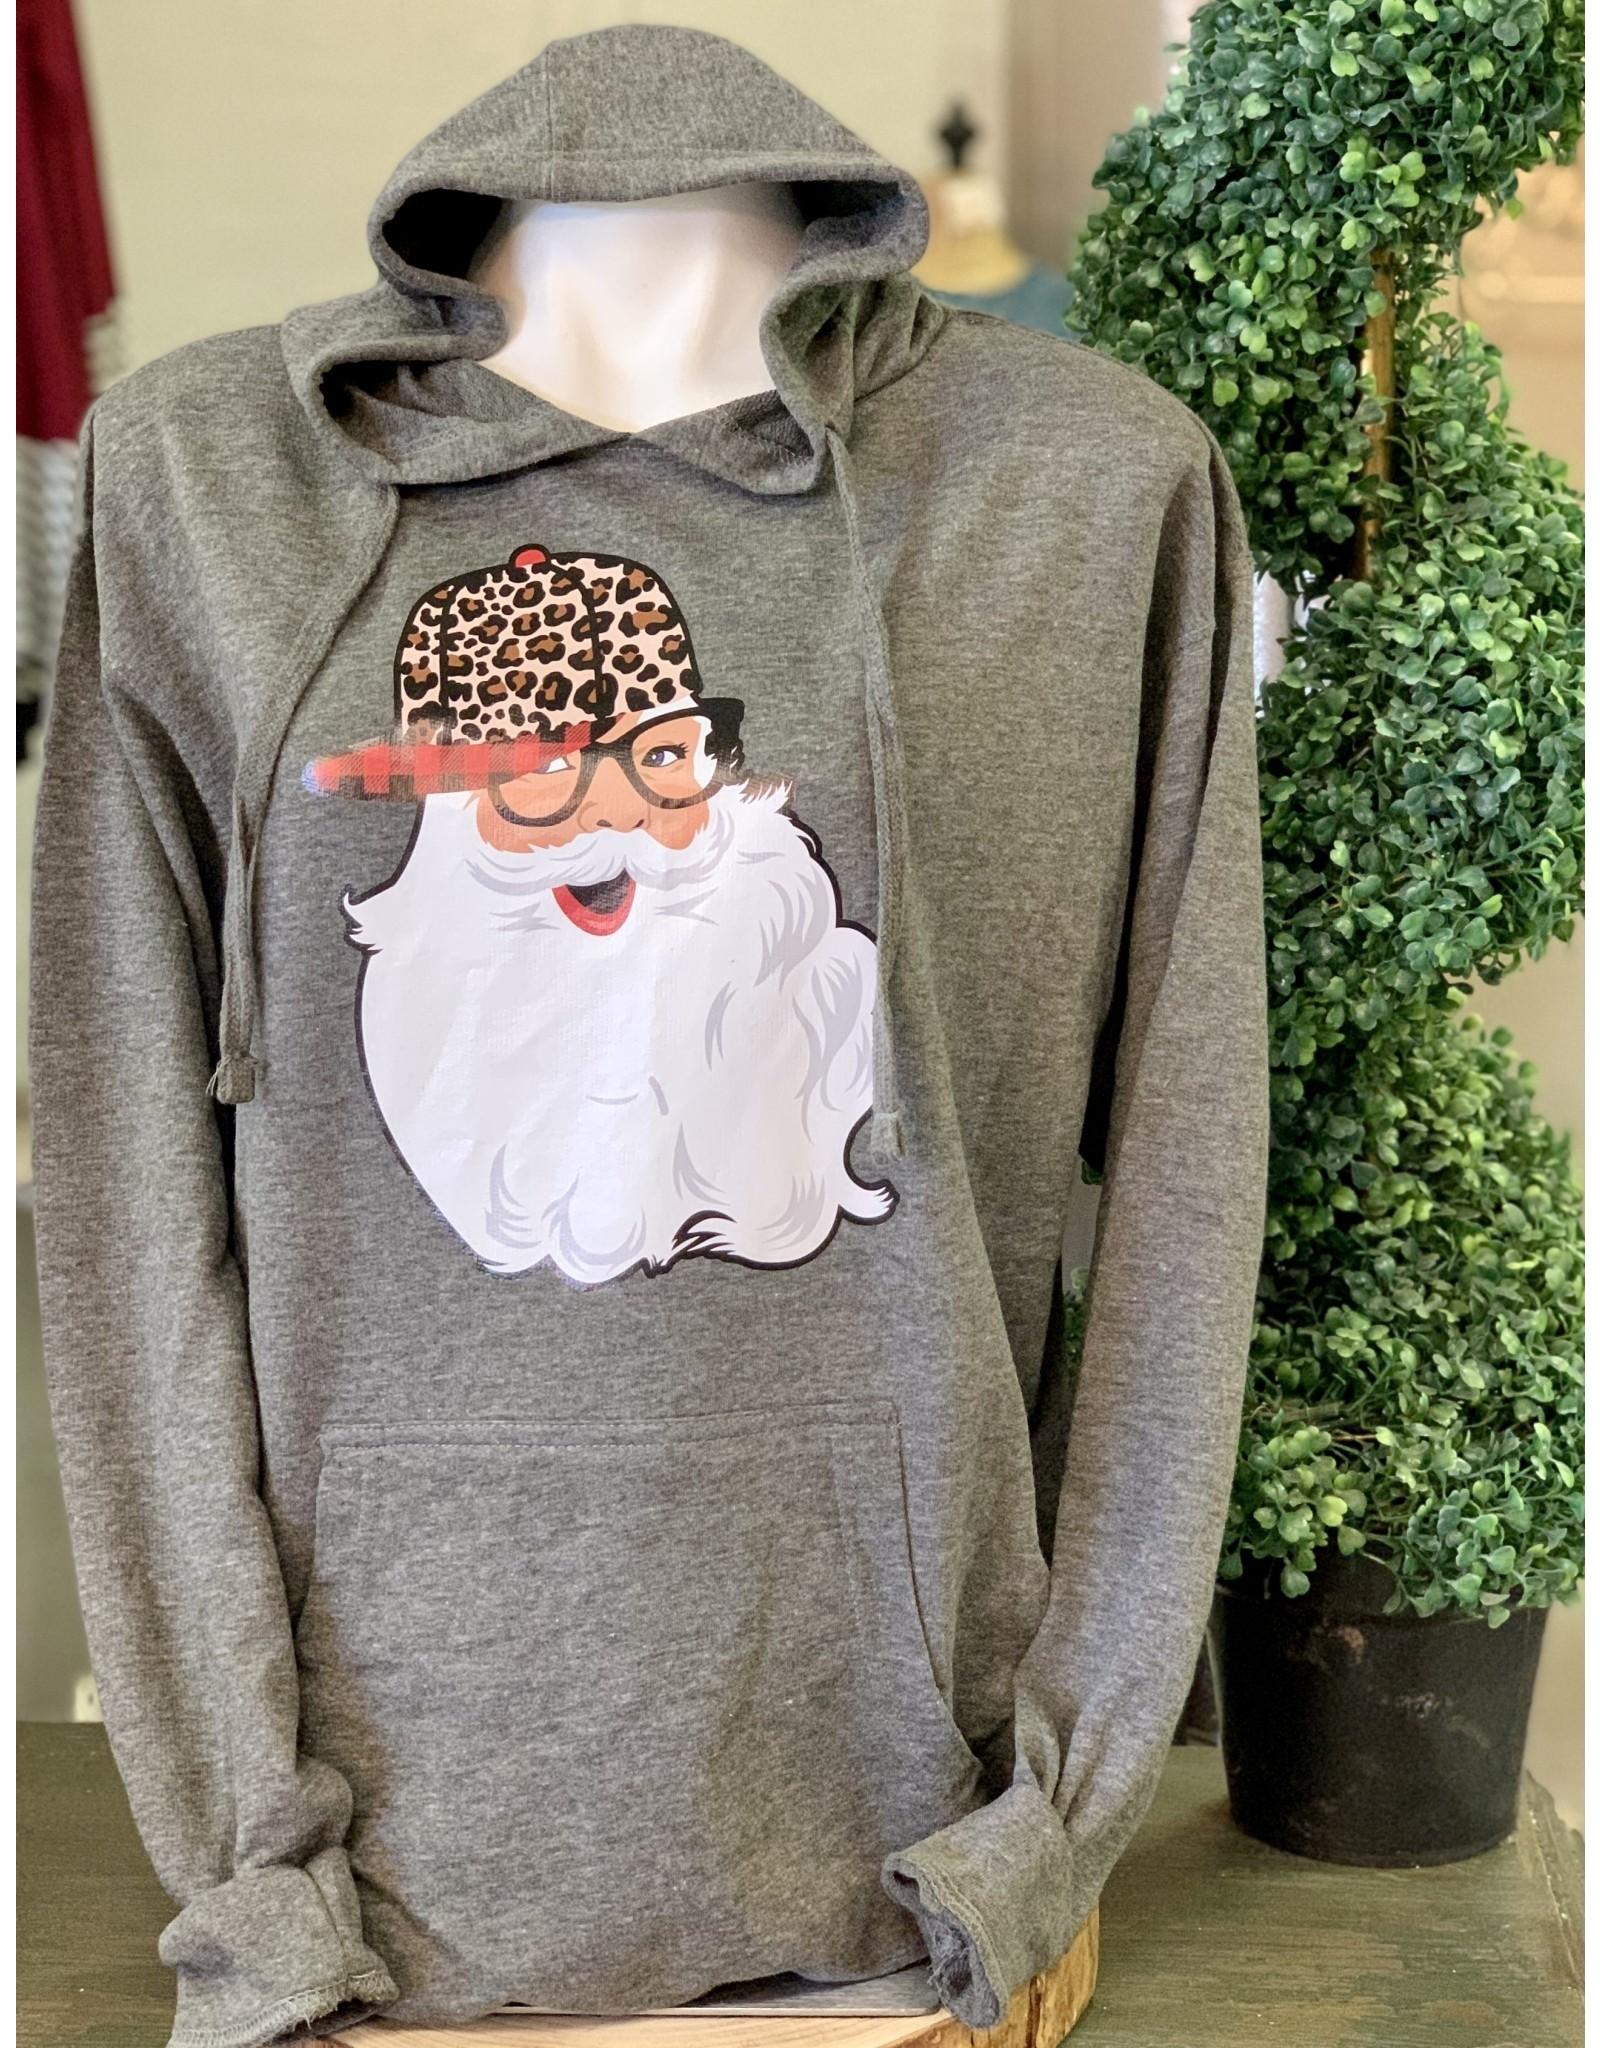 The Ritzy Gypsy Santa Homie Sweatshirt